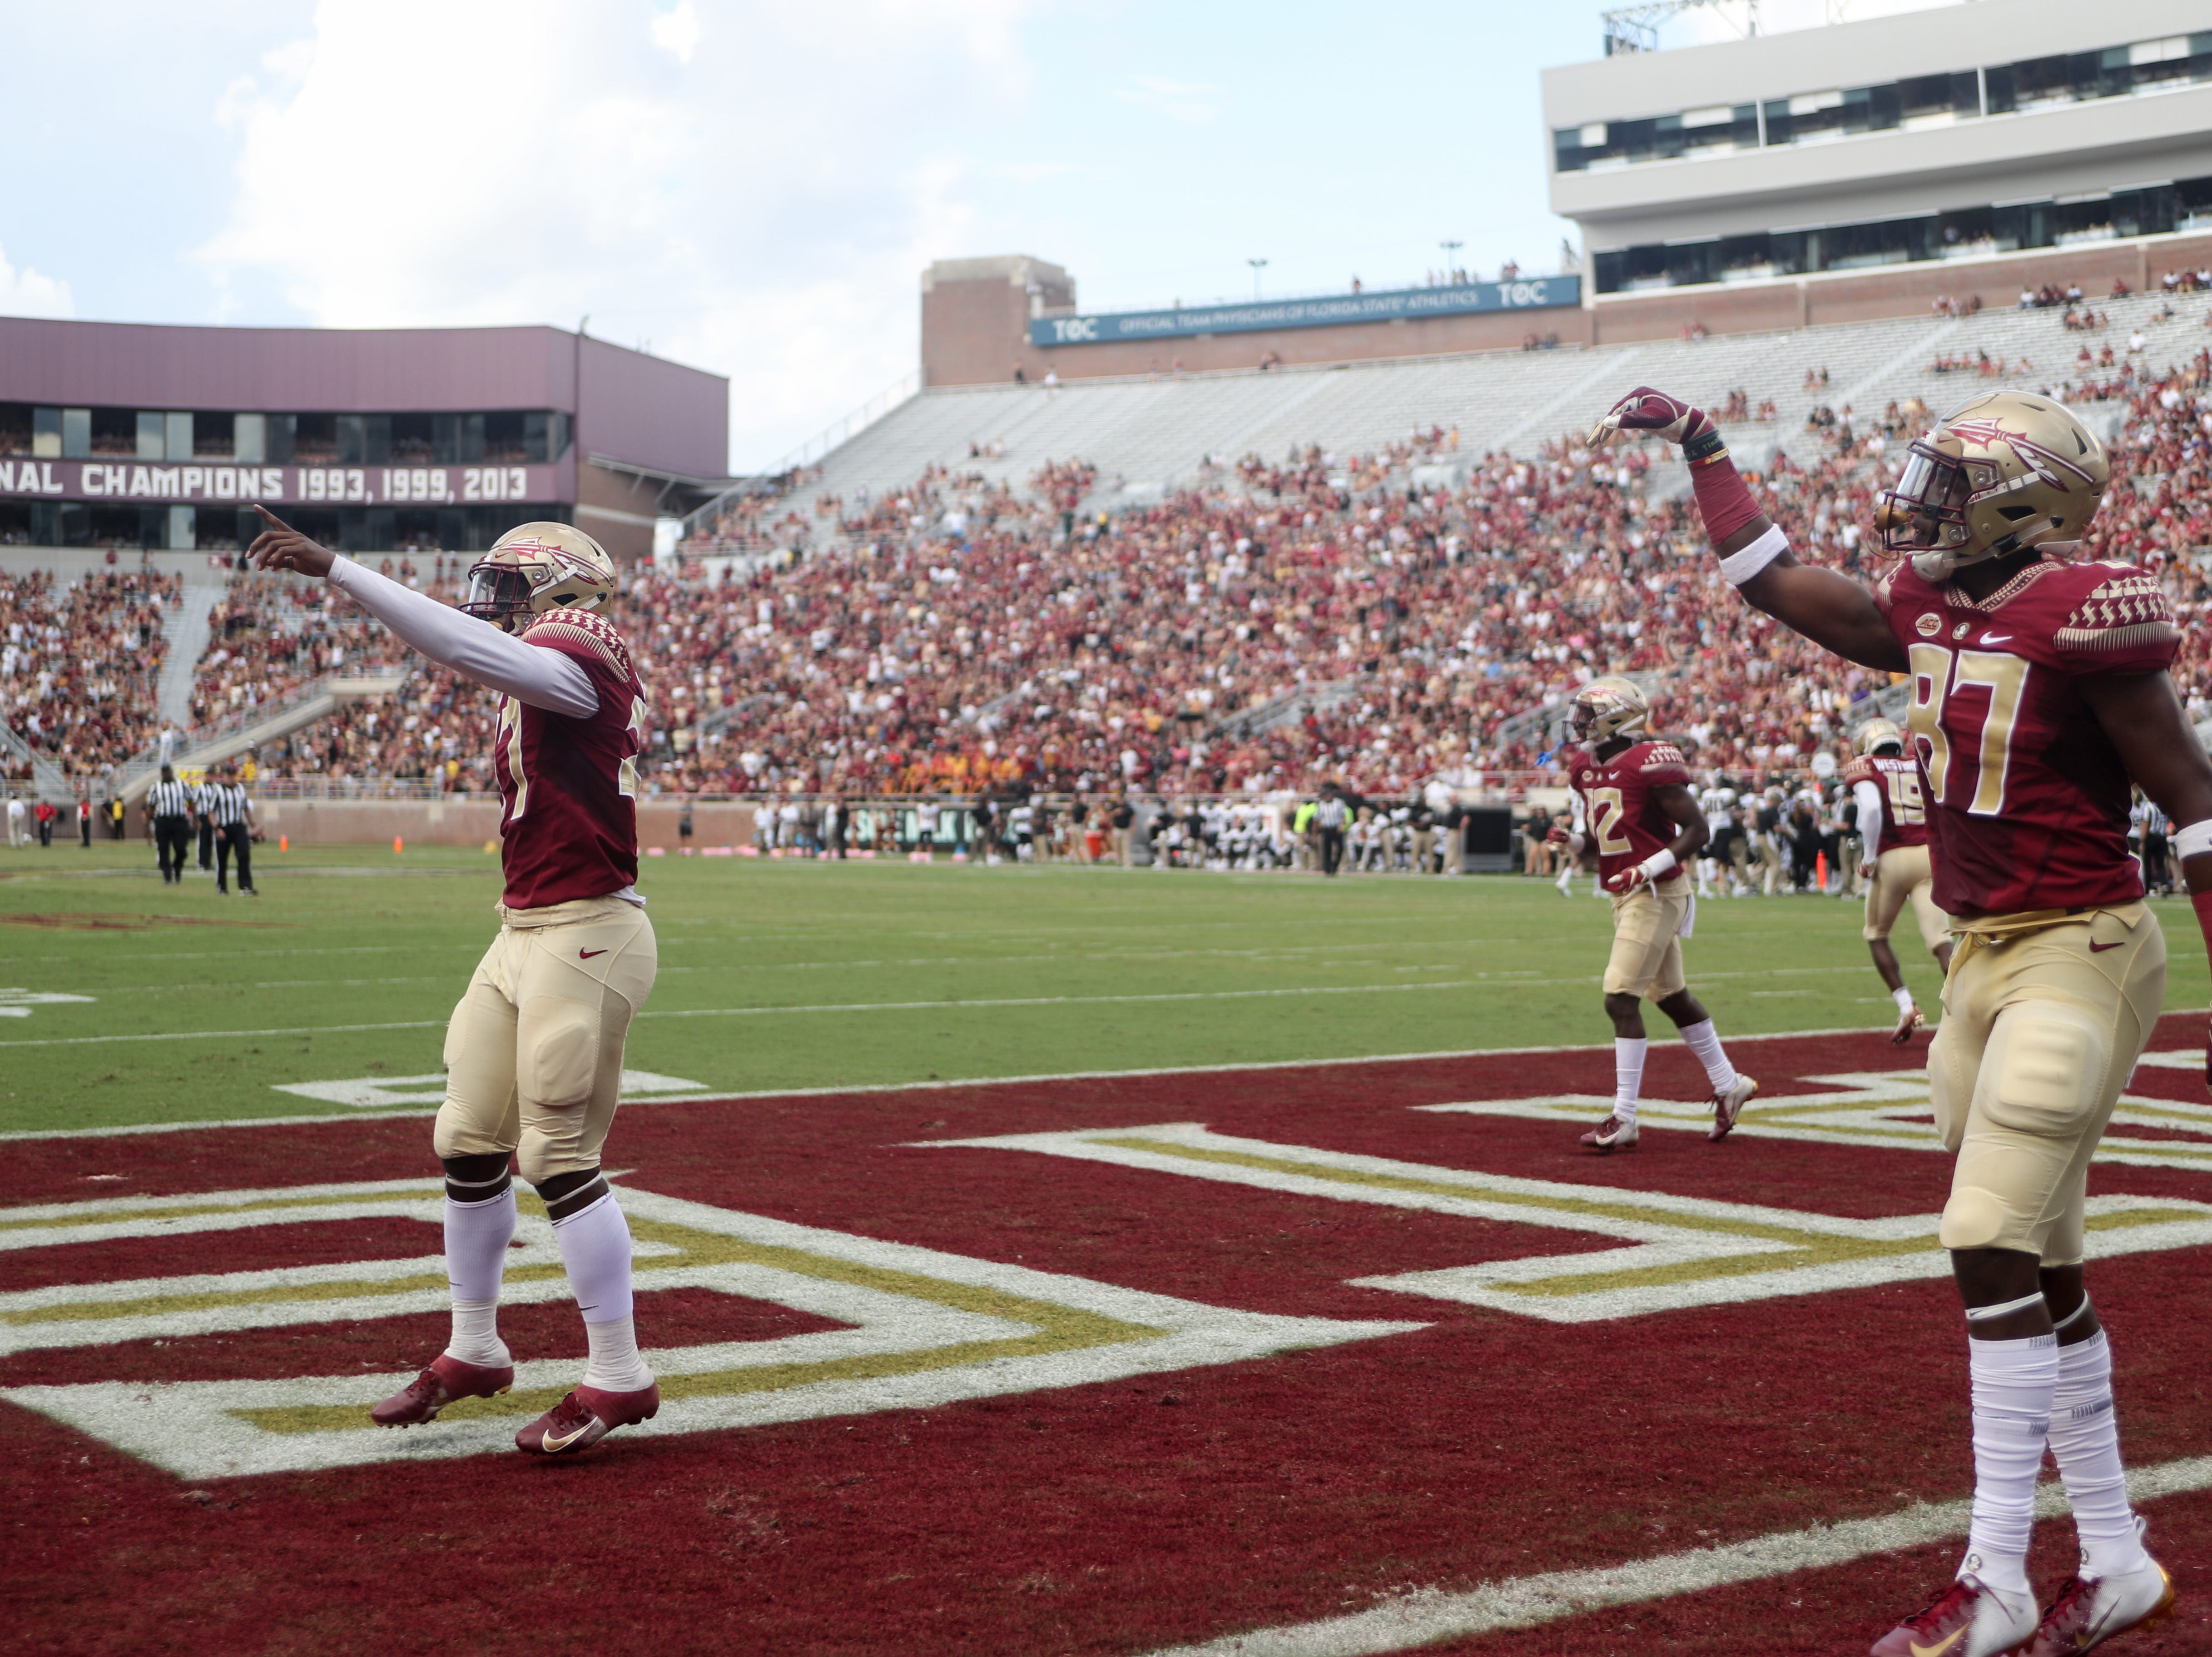 Florida State Seminoles wide receiver Ontaria Wilson (27), quarterback Deondre Francois (12) and tight end Camren McDonald (87) celebrate in the end zone during FSU's homecoming game against Wake Forest at Doak S. Campbell Stadium Saturday, Oct. 20, 2018.